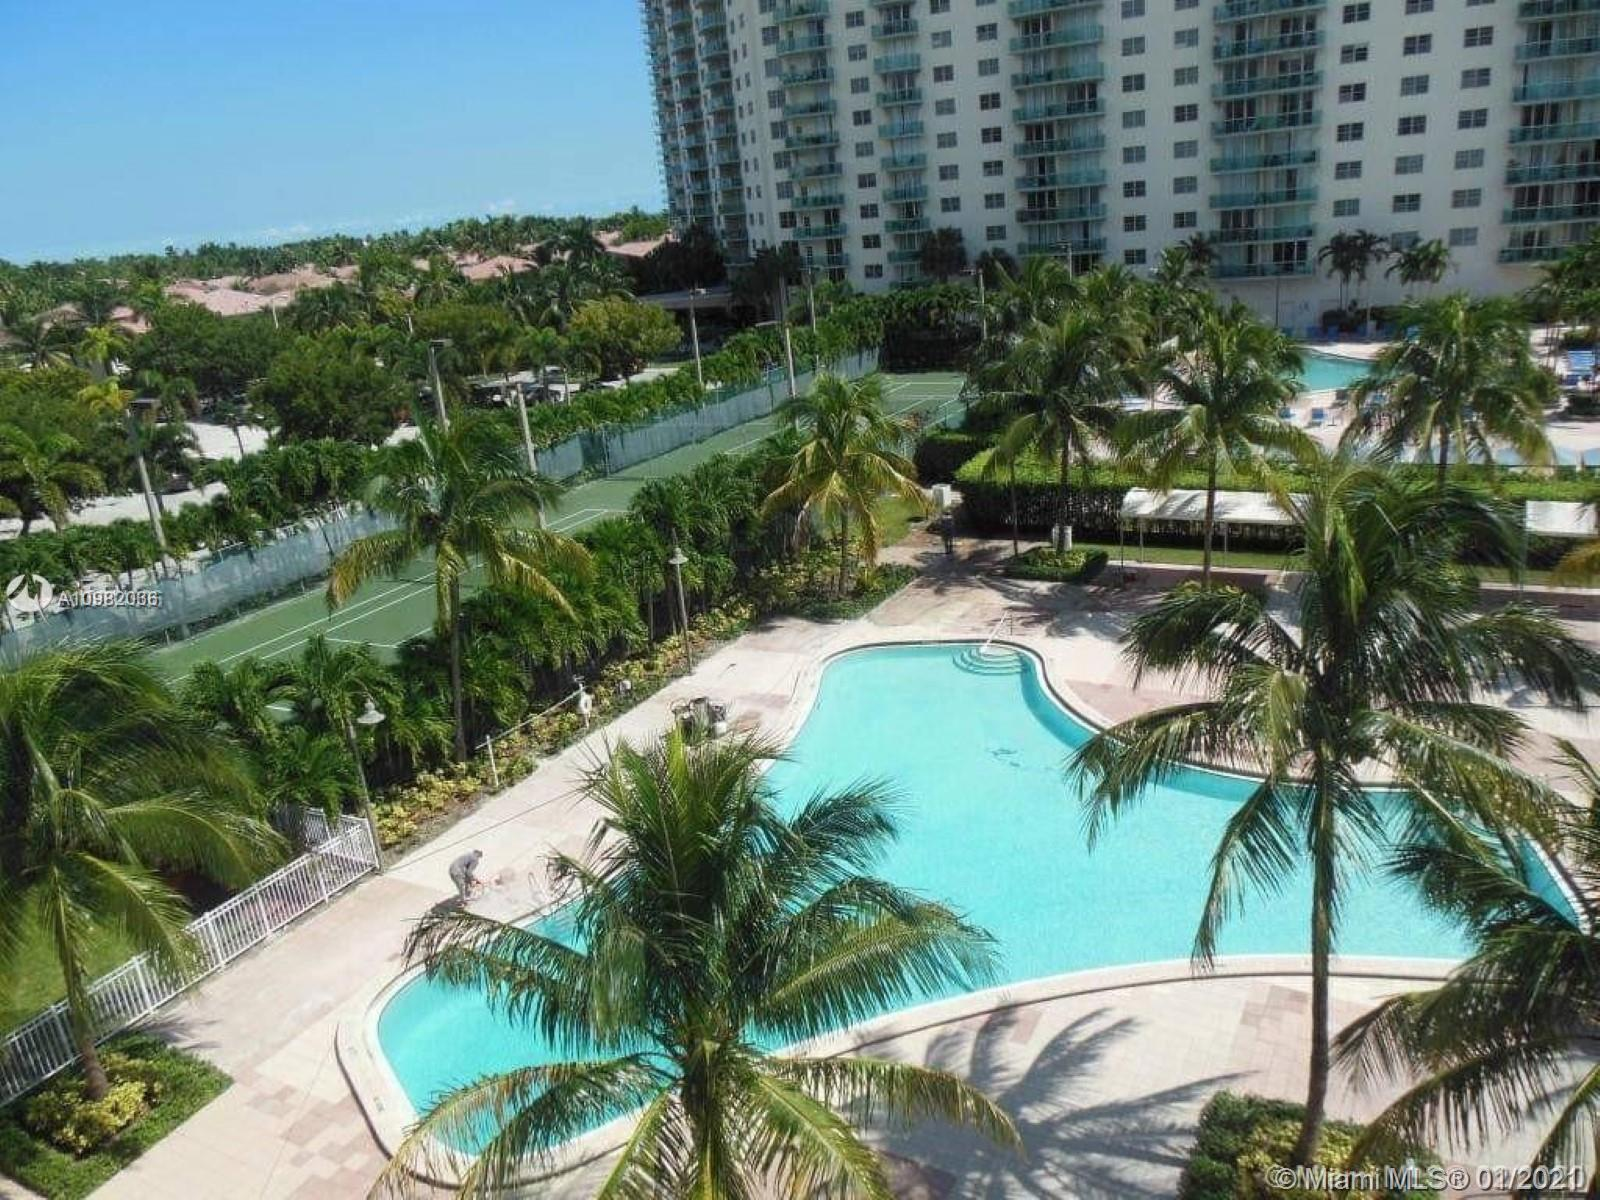 ATTENTION #INVESTORS: RENTED UNTIL MARCH 2022 FOR $2700! #WELCOMEHOME! #OCEANVIEW, #WALKTOOECAN, #SU